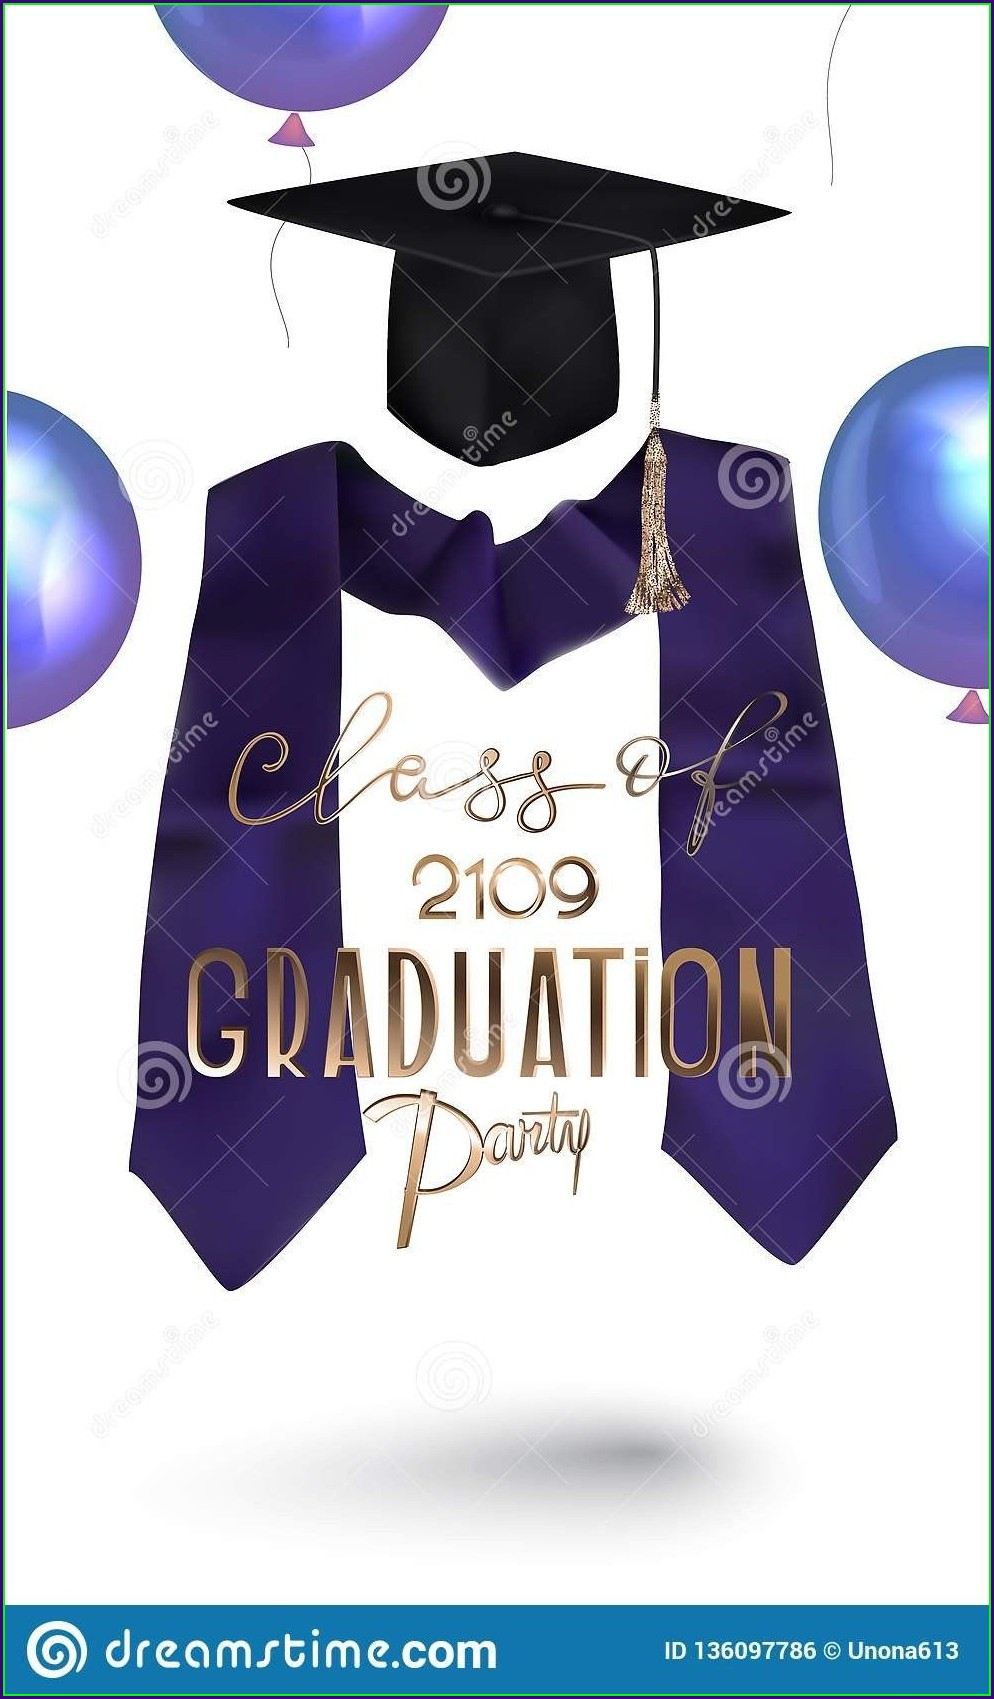 Graduation Invitation Card 2019